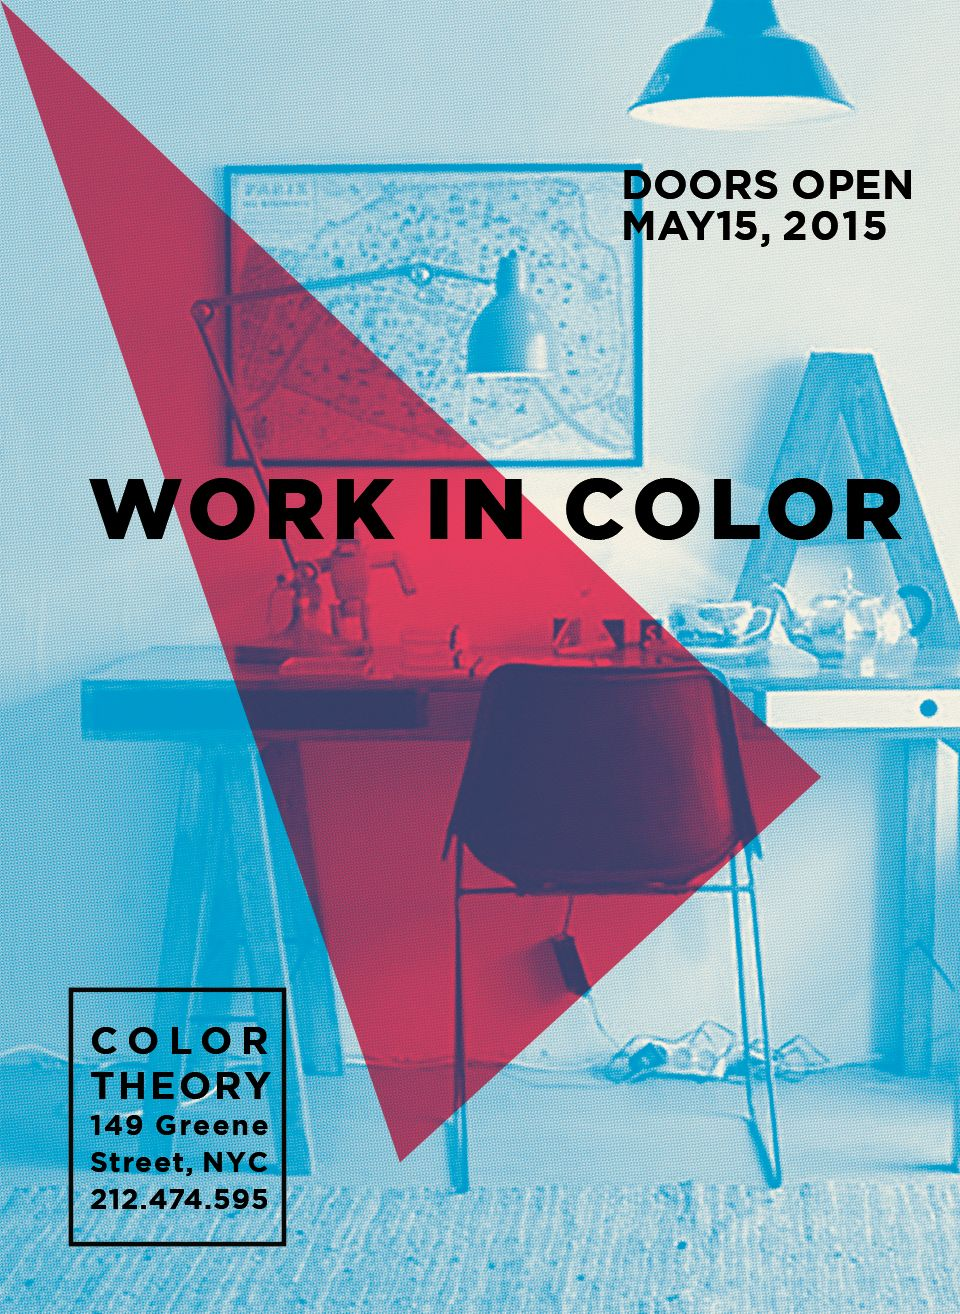 color theorywild poster series for modern furniture store